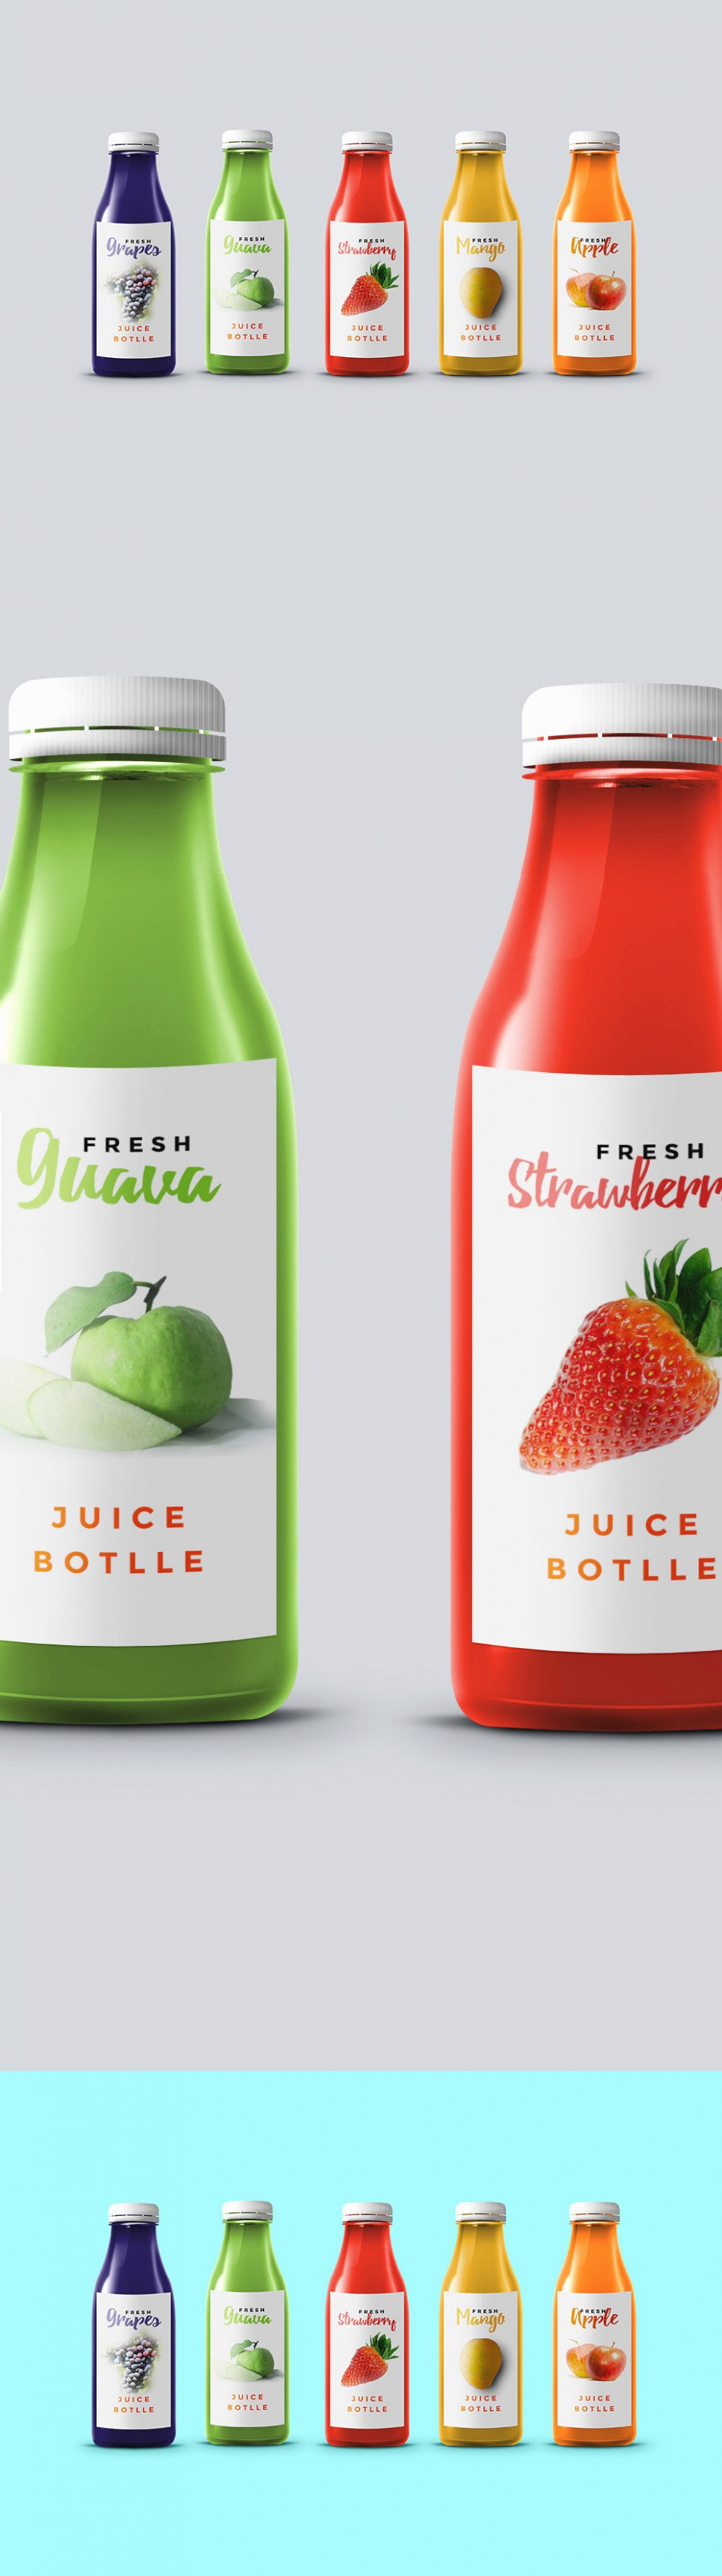 E Juice Label Template New What S so Trendy About E Juice